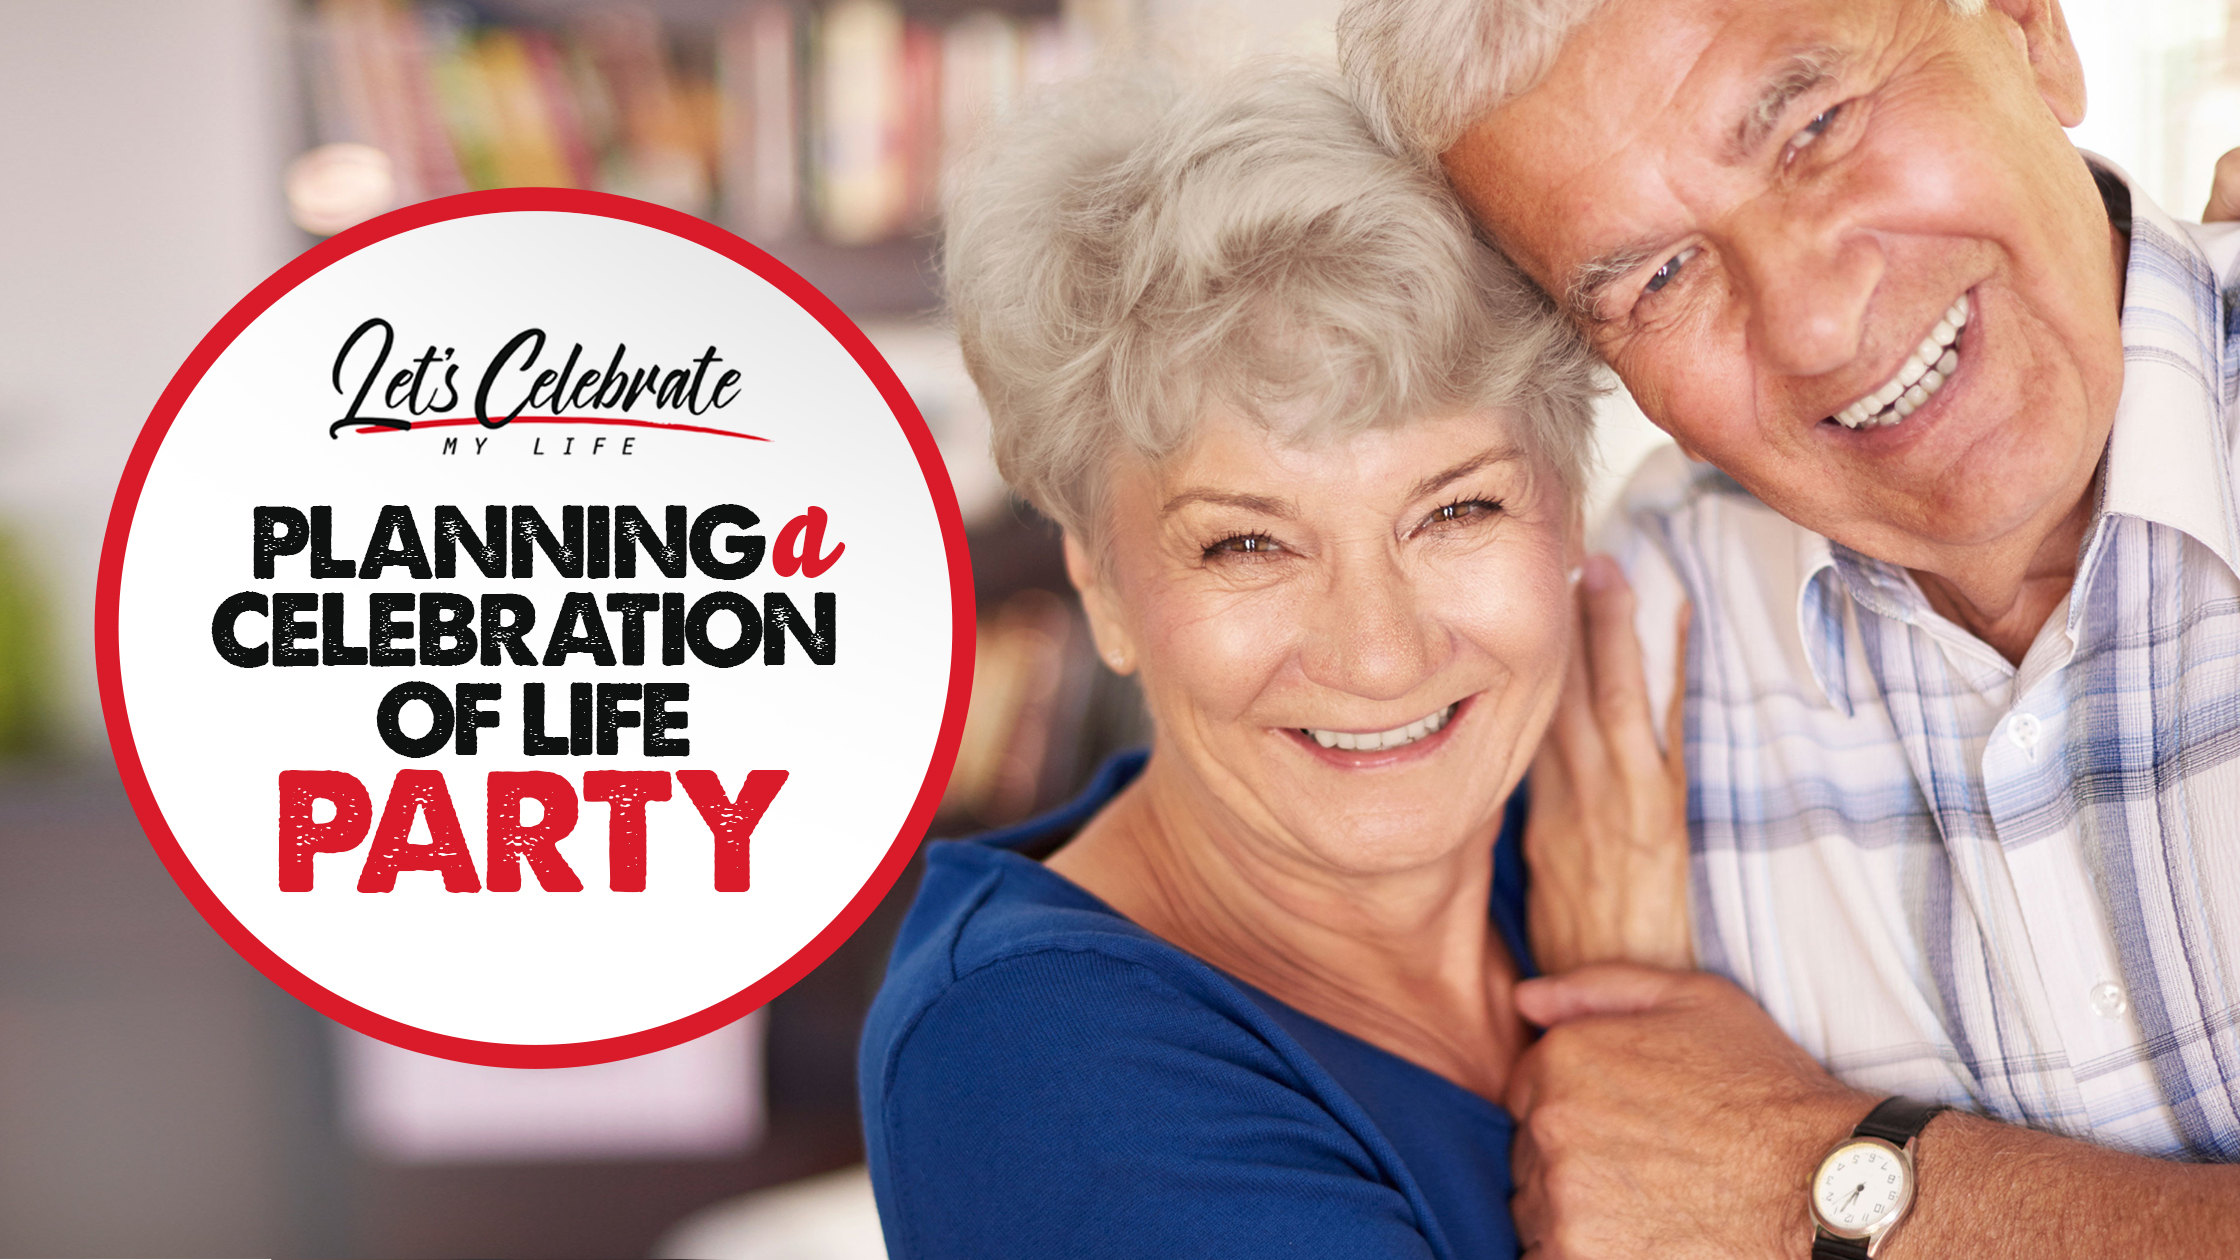 Planning A Celebration Of Life Party